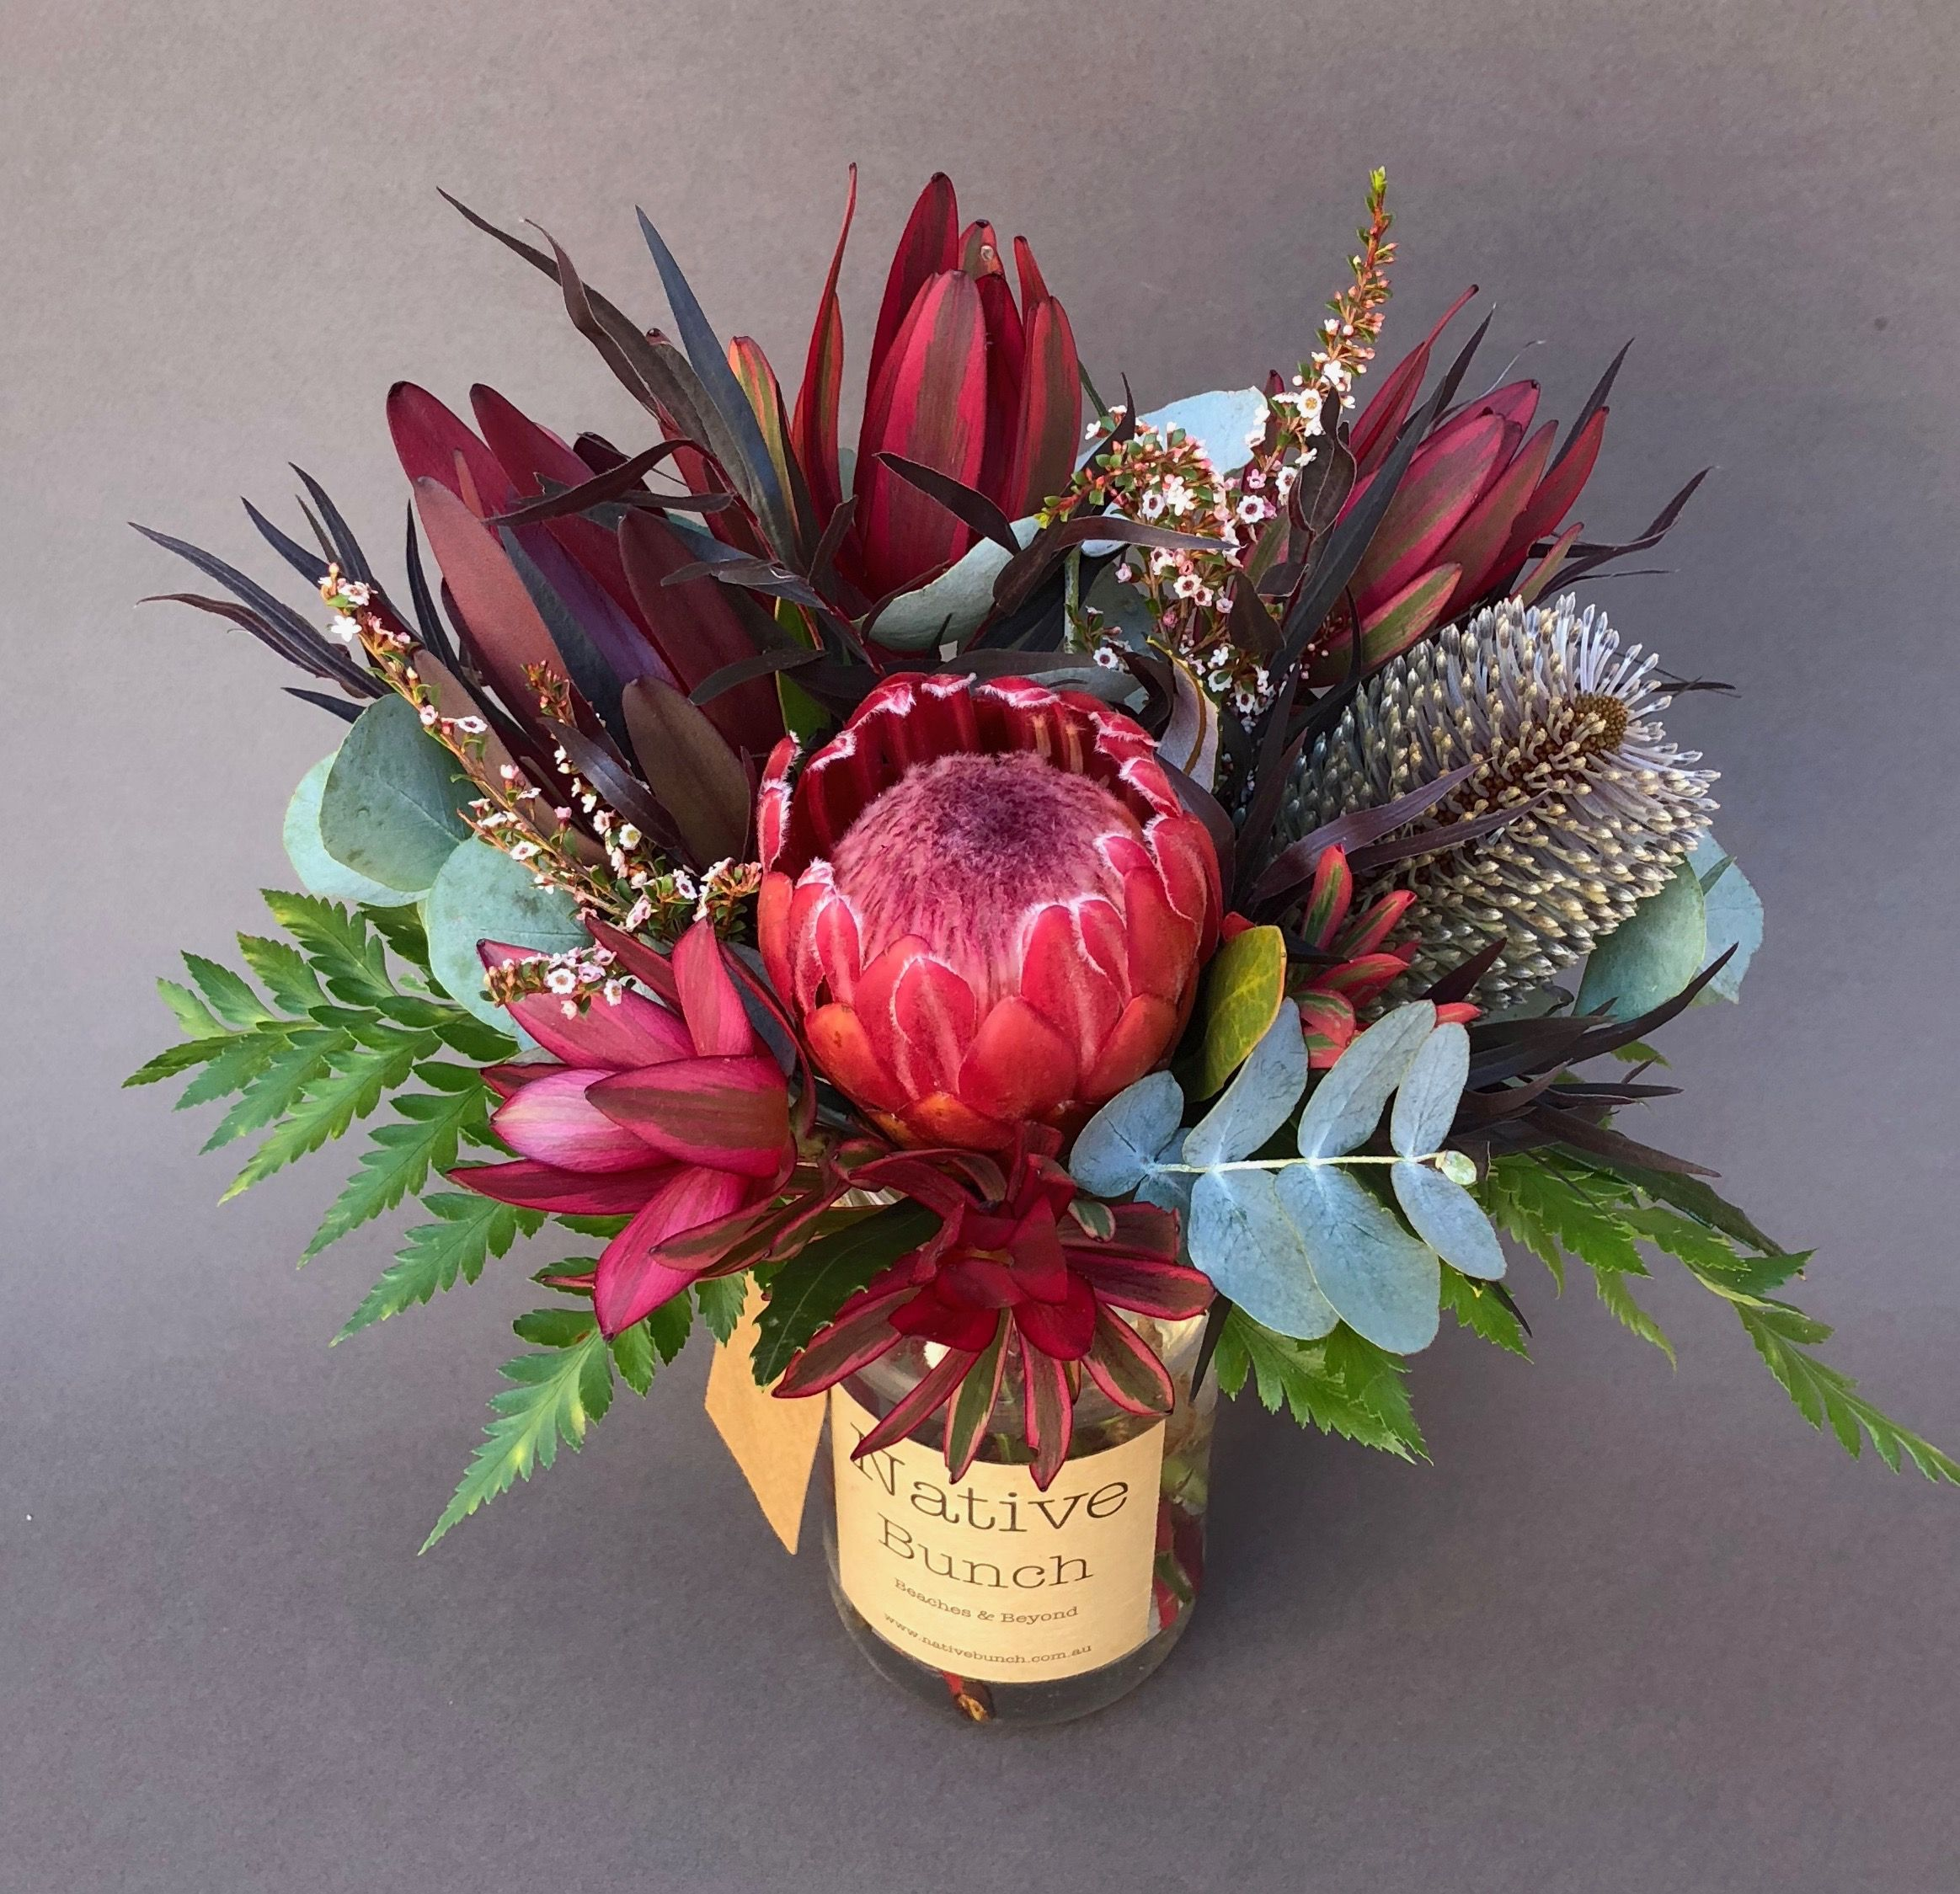 Native Flower Posy Of Protea Banksia Thryptomene Leucadendron After Dark Foliage Flower Arrangements Table Flower Arrangements Wedding Table Flowers